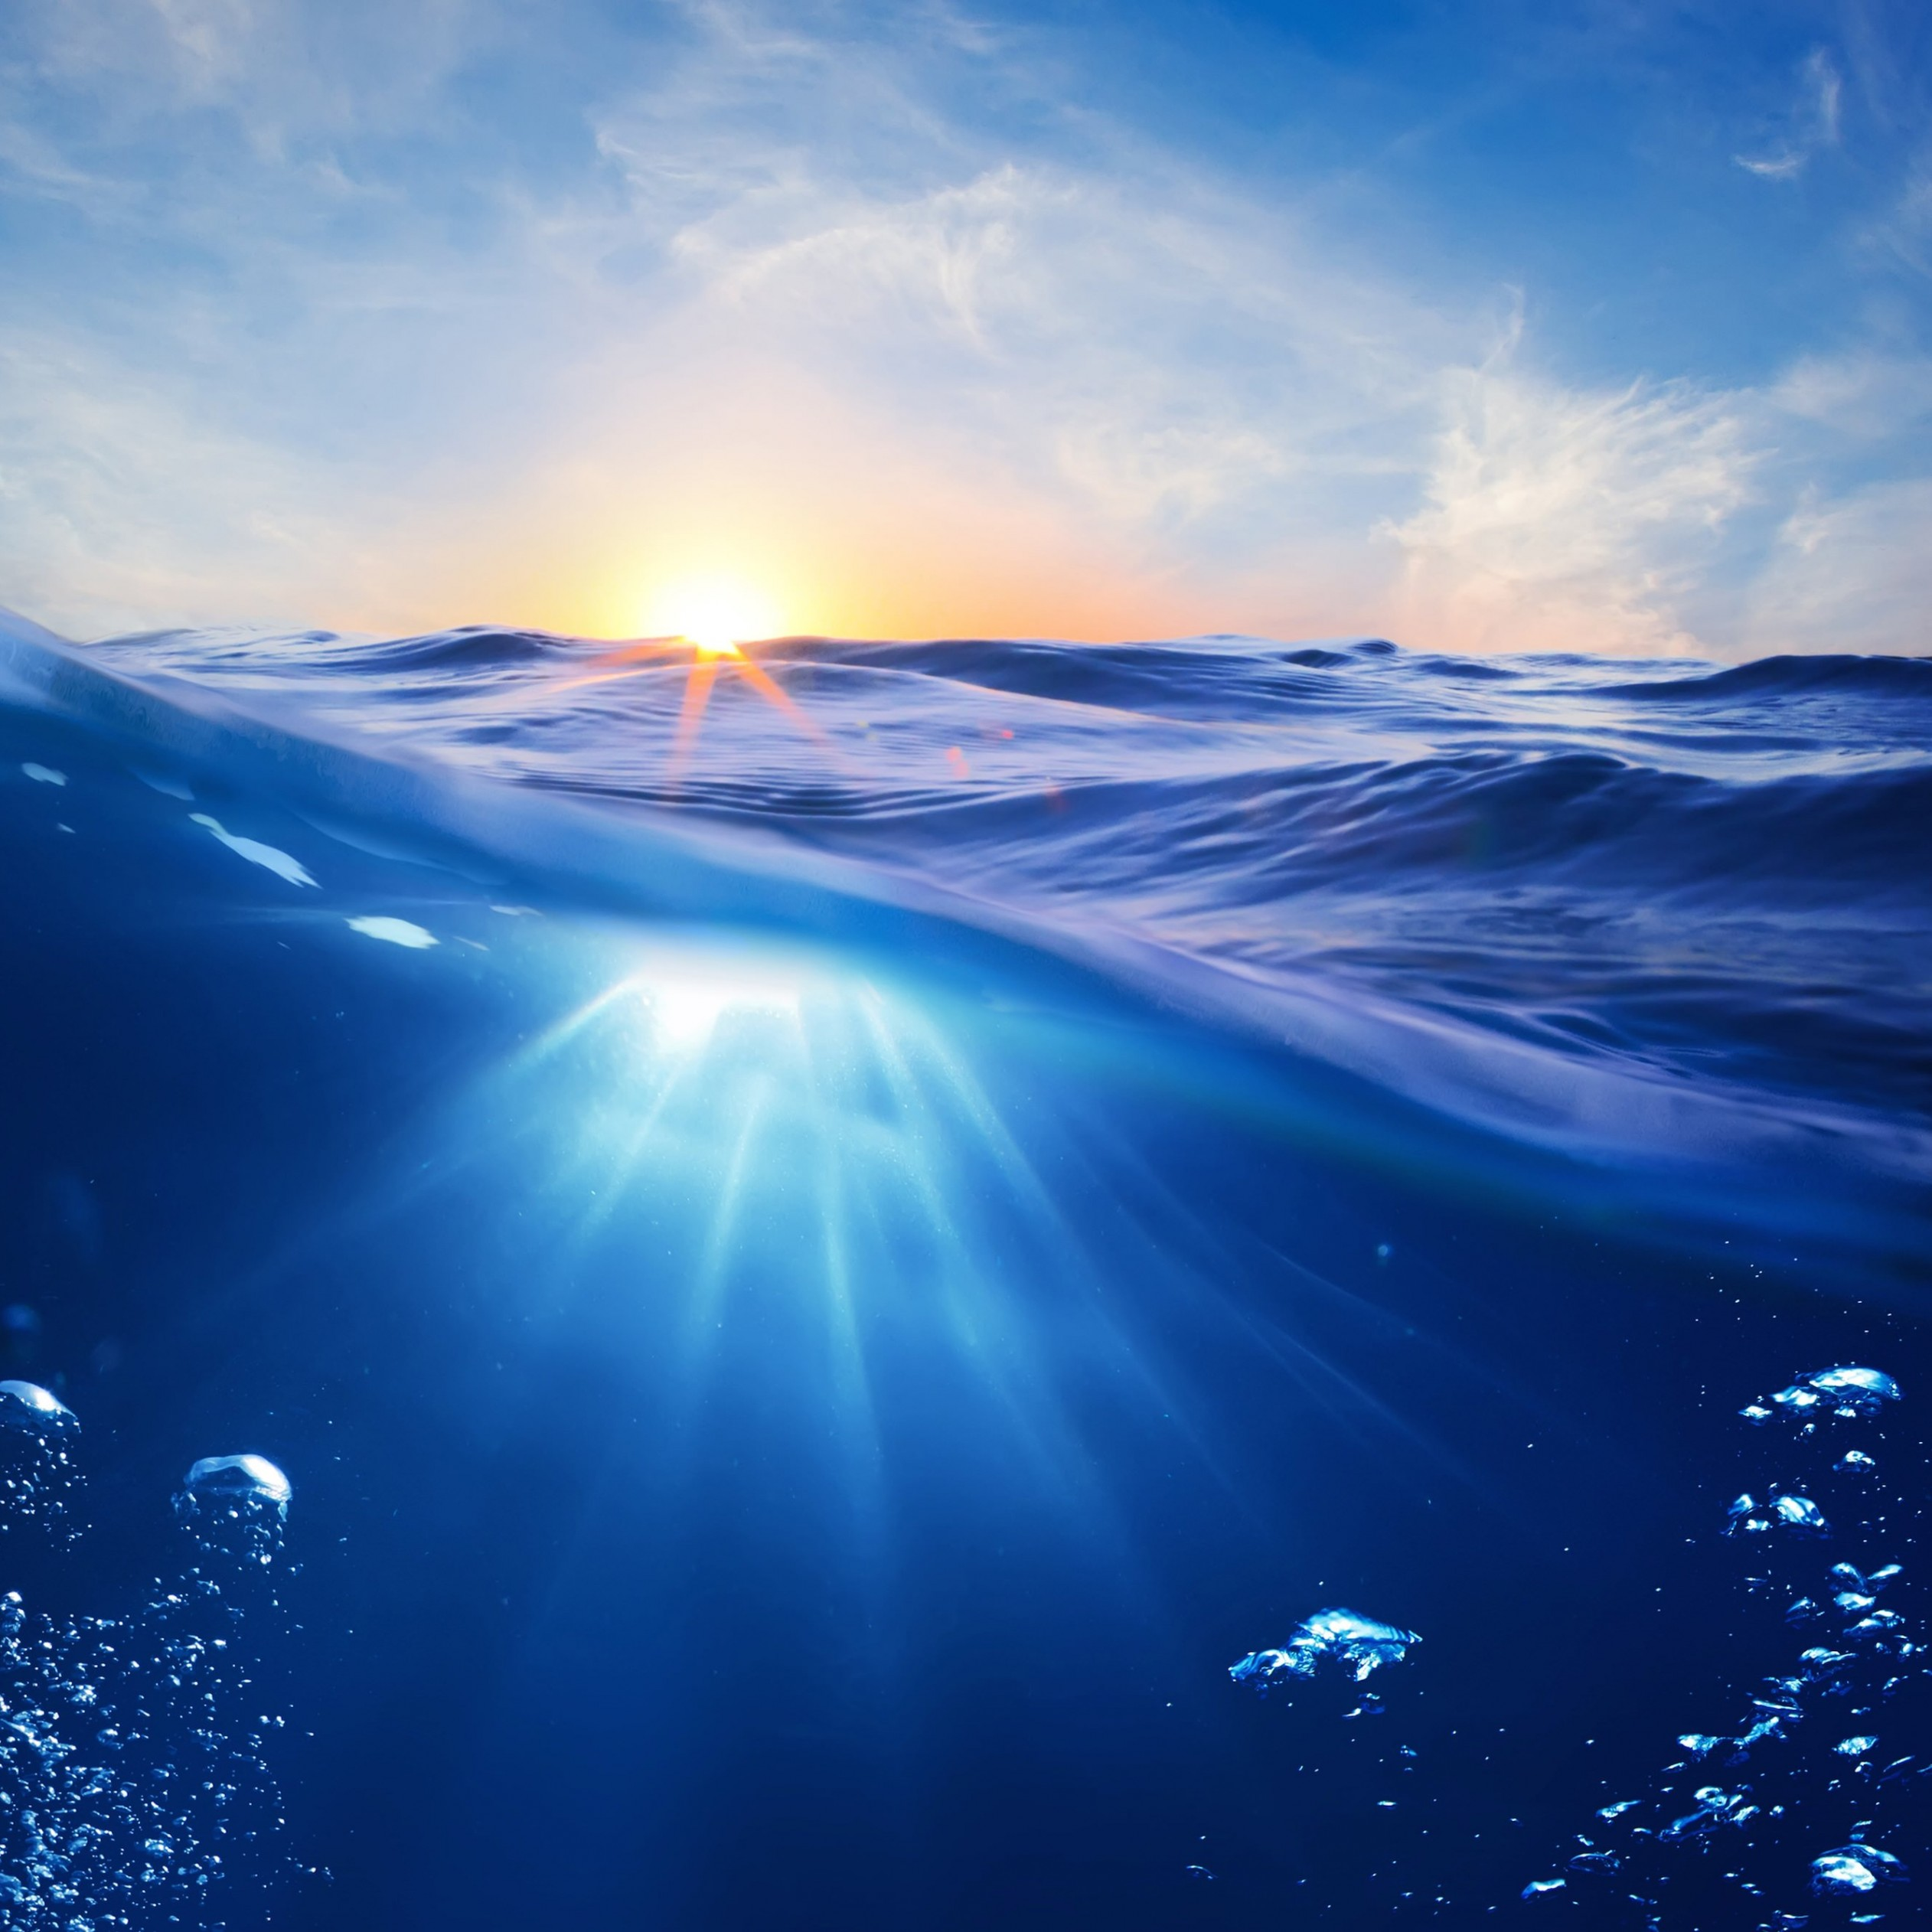 Sunrise Half Underwater Wallpaper for Apple iPad 4